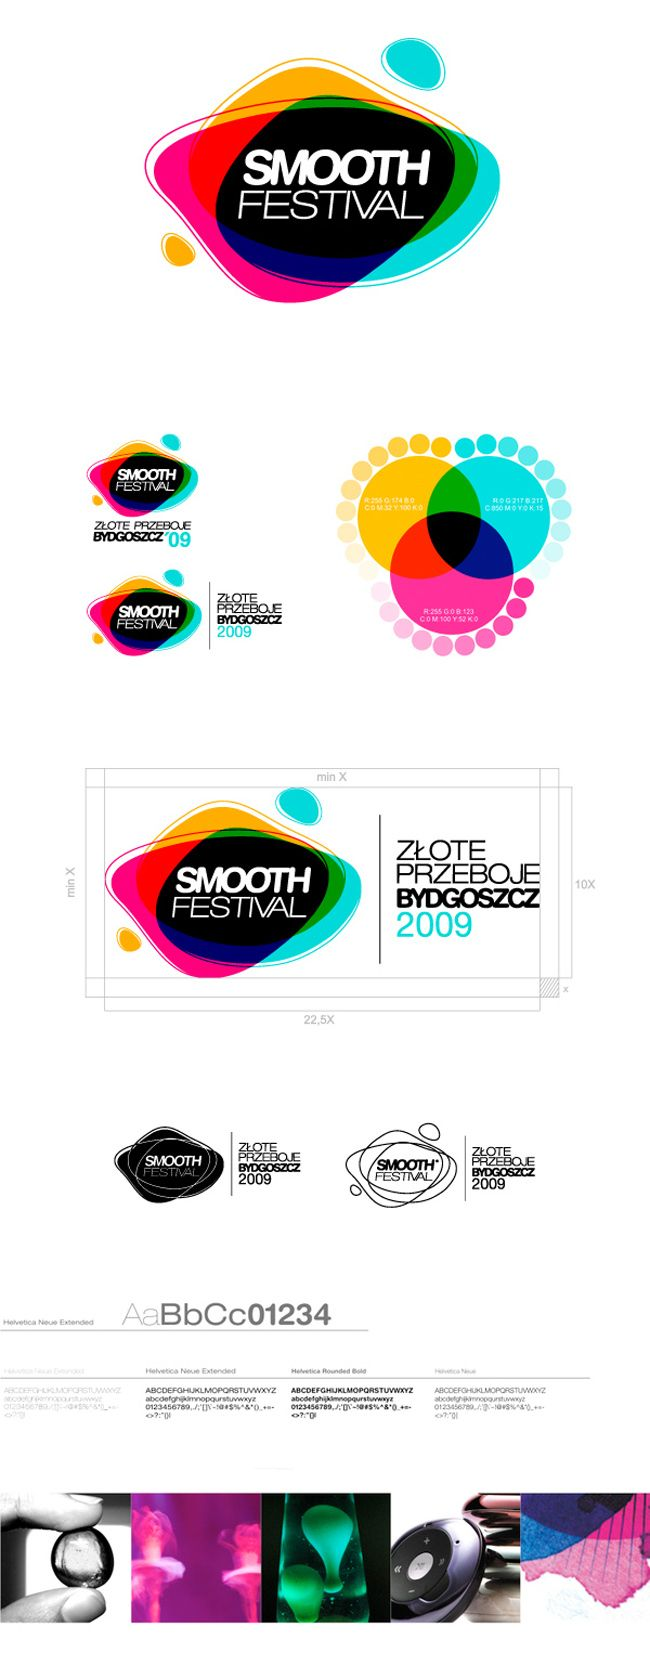 Smooth festival logo and brand identity